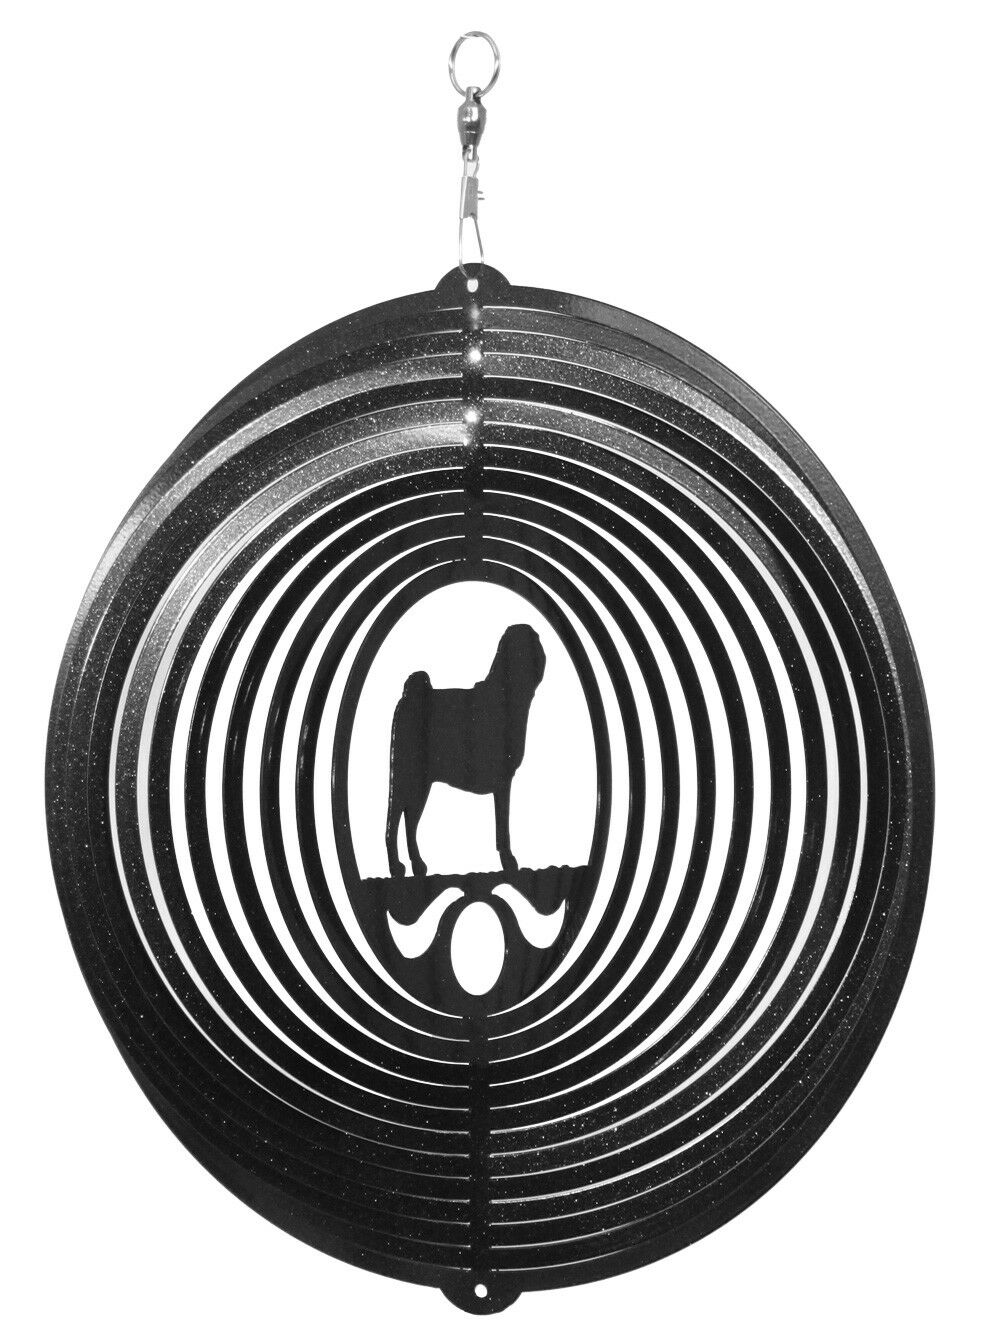 SWEN Products PUG Dog Circle Swirly Metal Wind Spinner